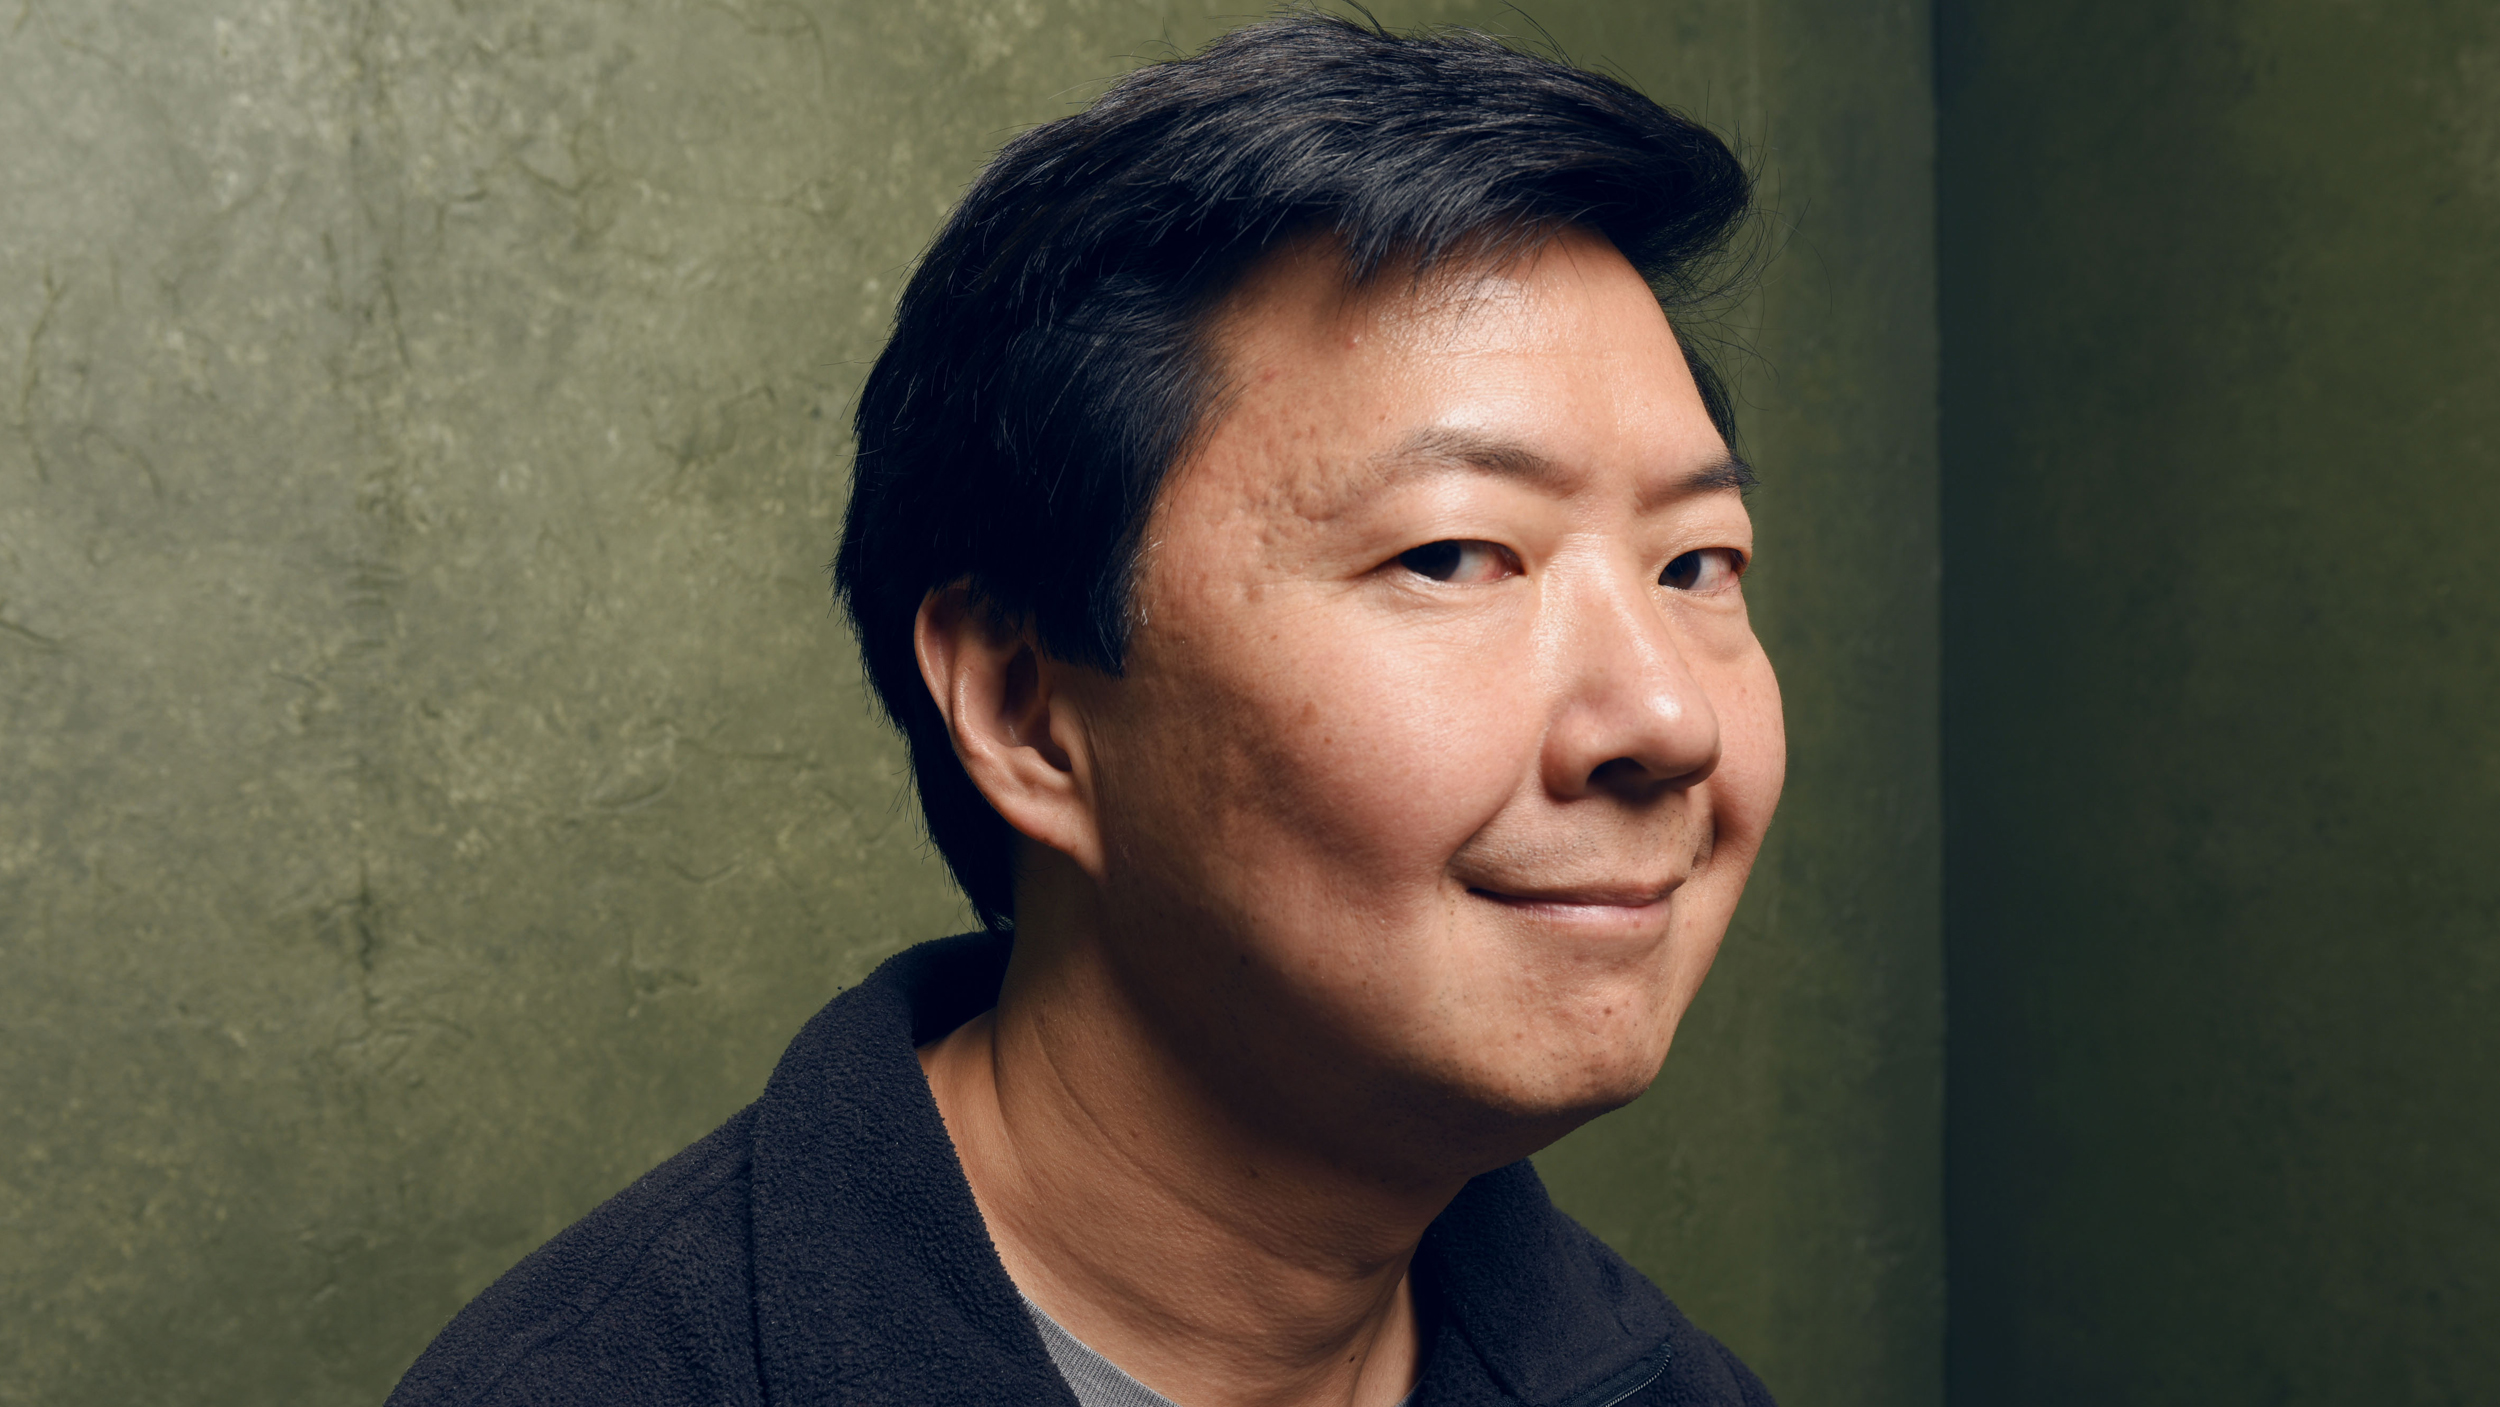 Ken Jeong Has Degrees From Both Unc And Duke But Where Does His